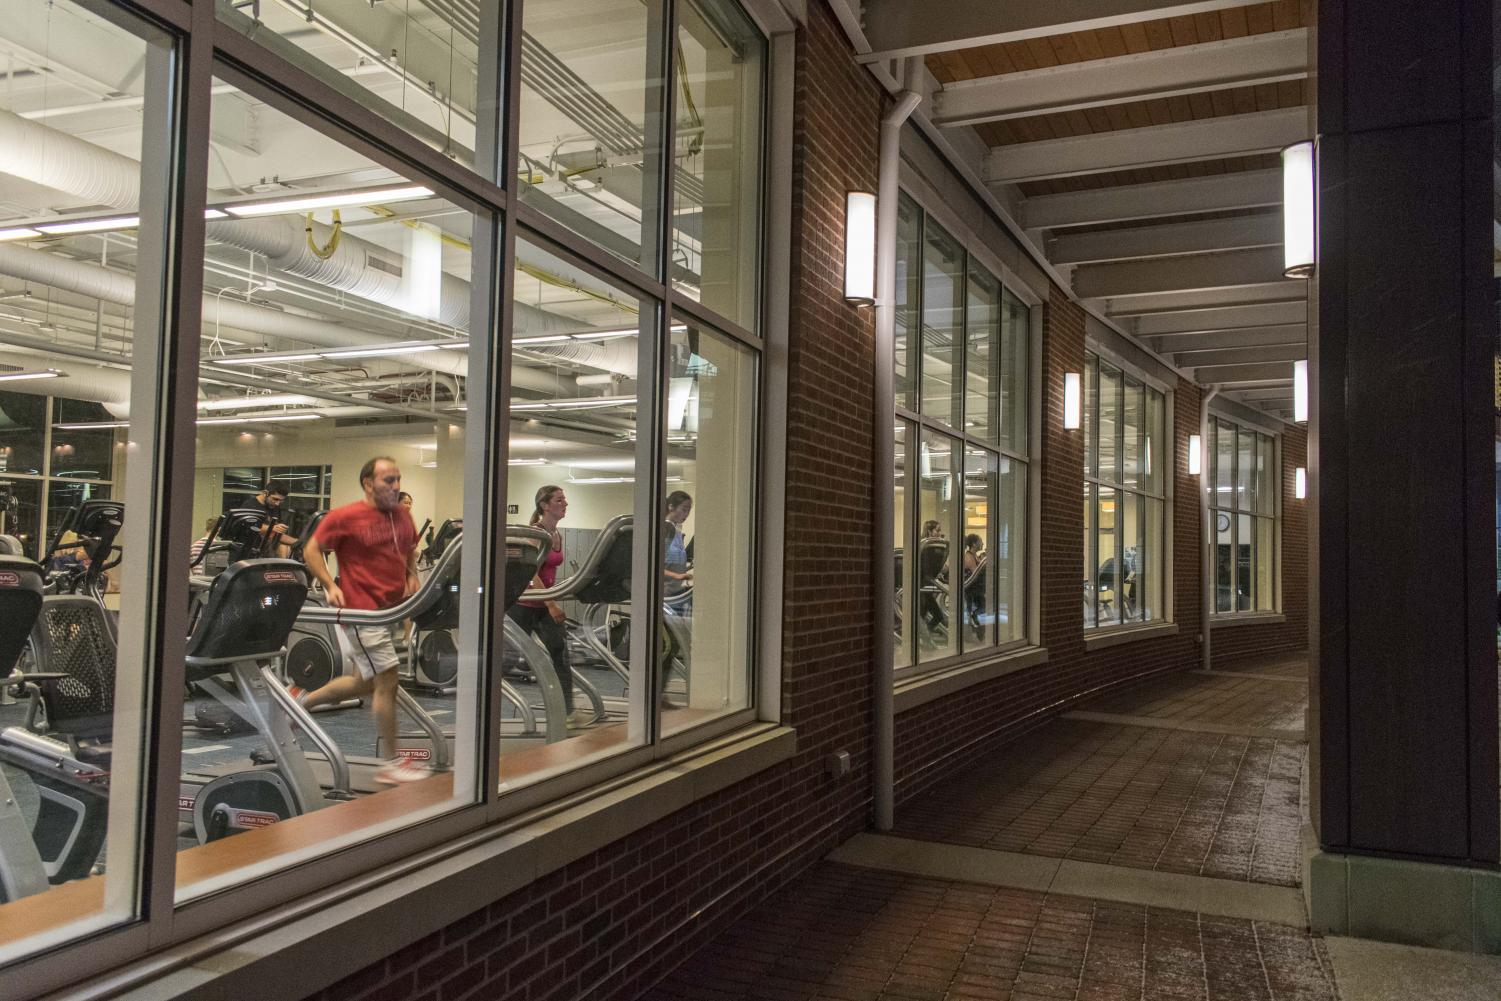 Case Gym Buddies, which formed this January, tries to encourage students to visit the gym by providing support and assistance.